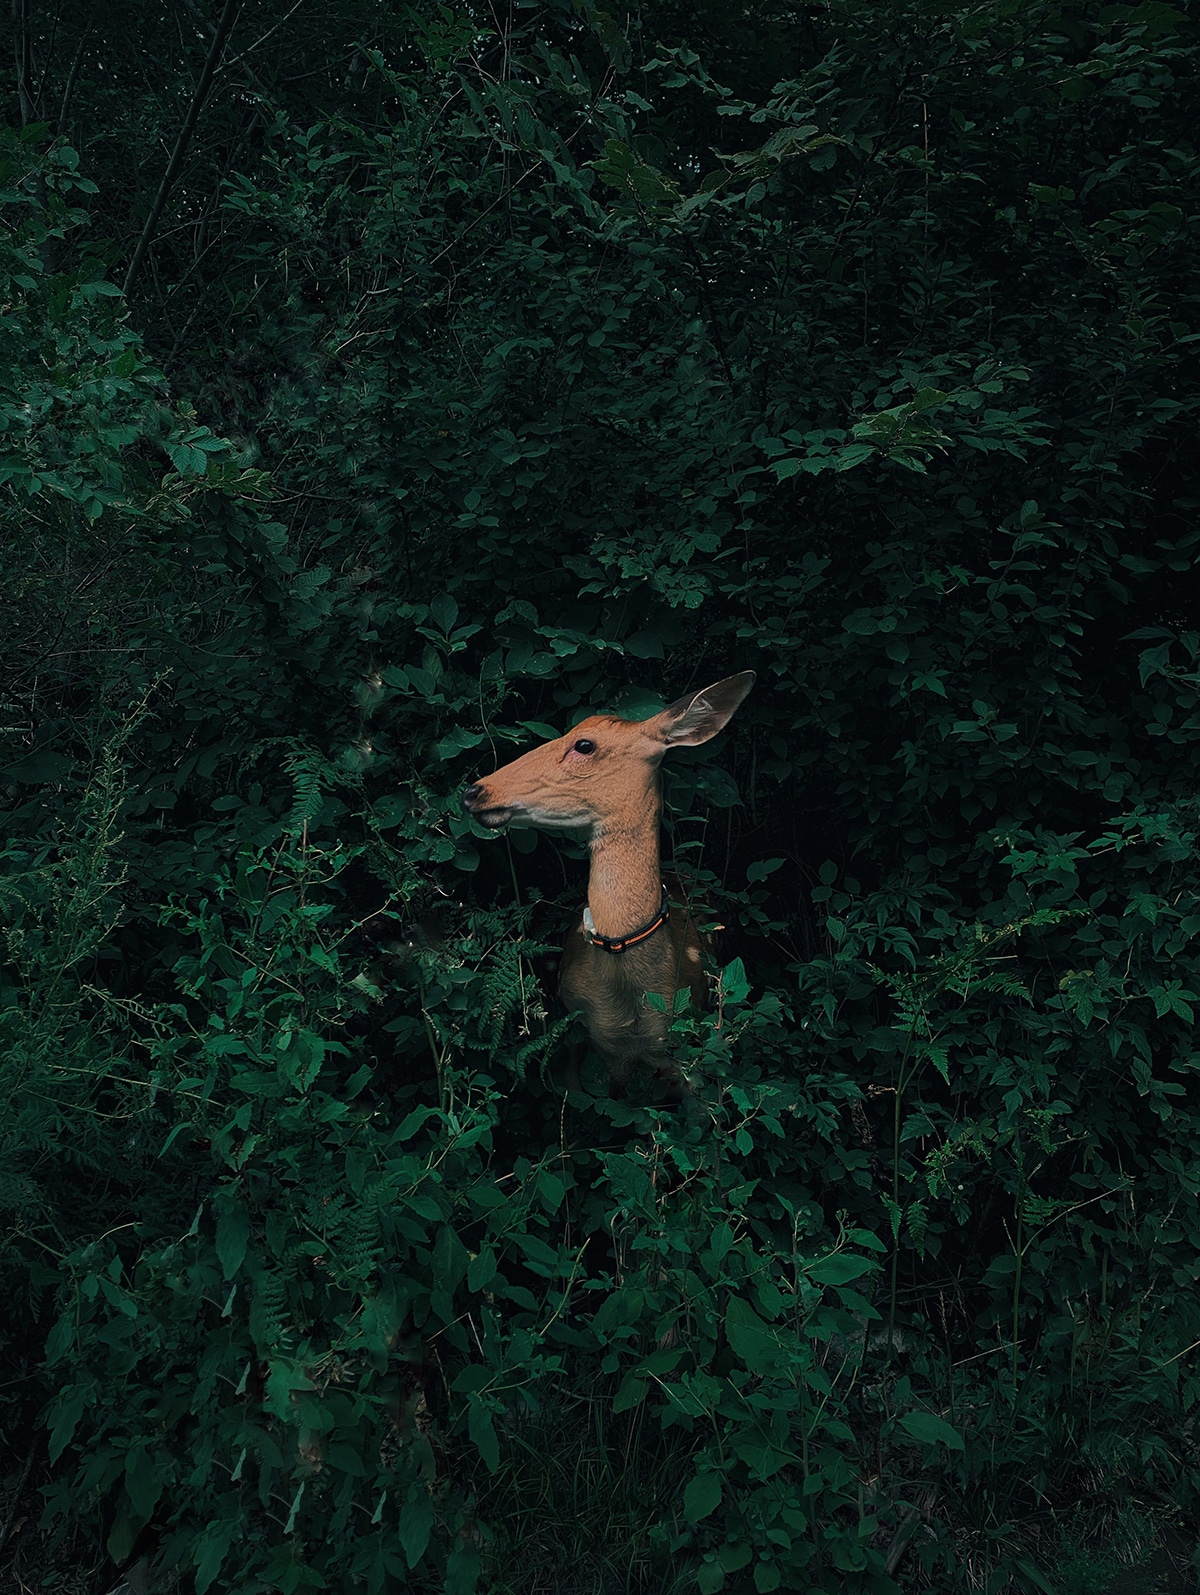 Deer Hidden in the Forest by Jian Cui